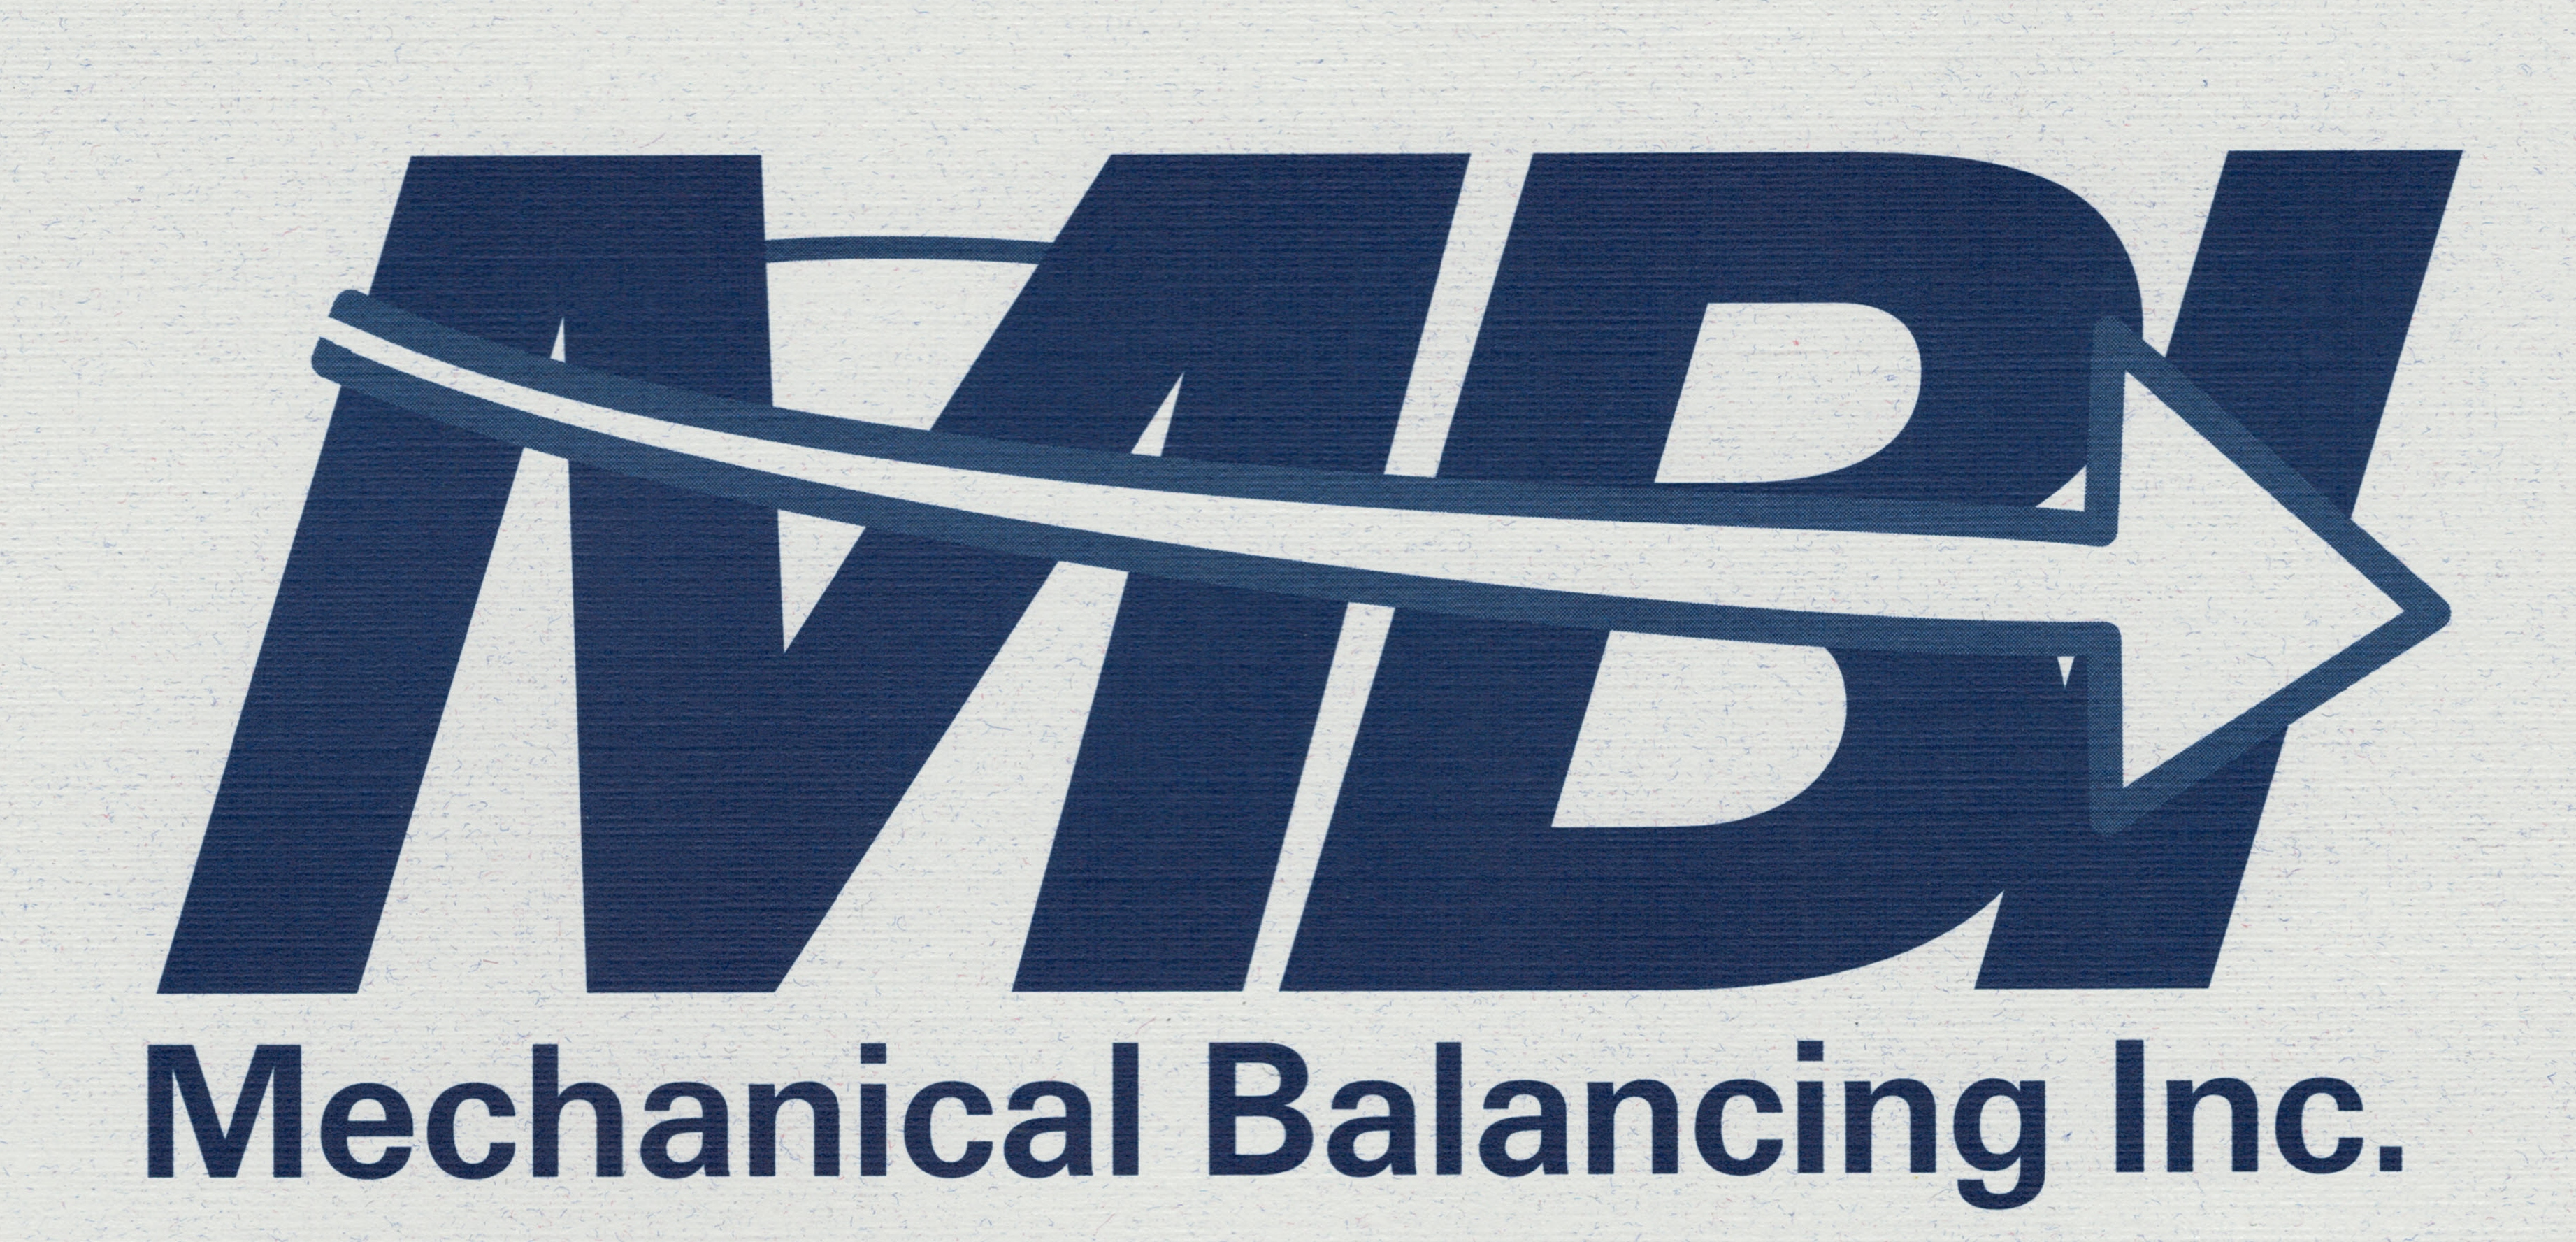 Mechanical Balancing logo